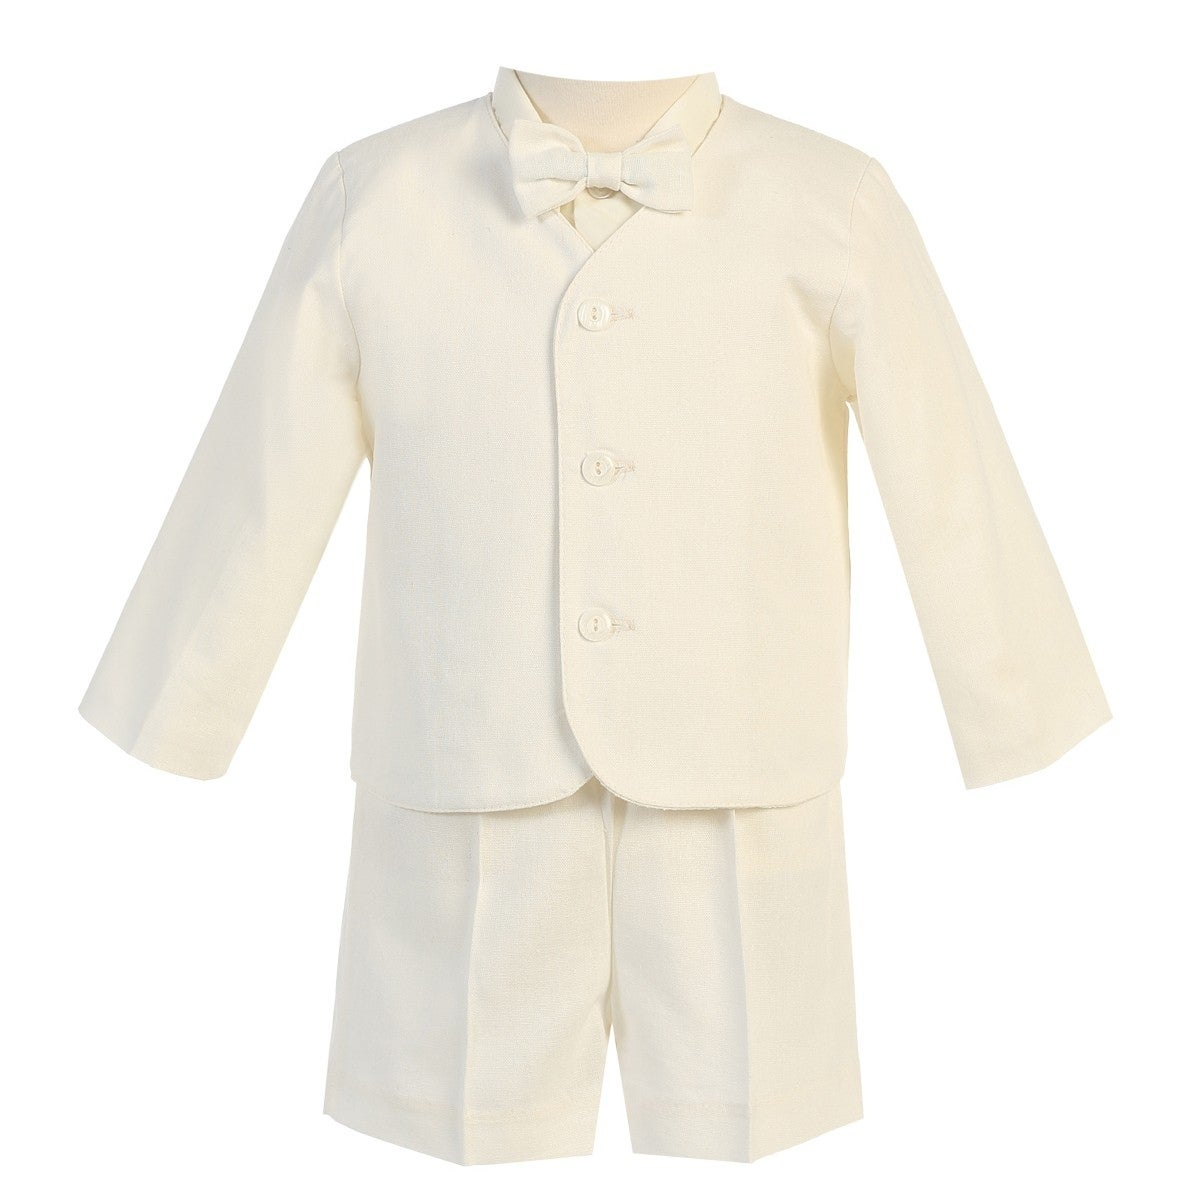 Lito Baby Boys Light Blue Eton Short Formal Ring Bearer Easter Suit 6-24M